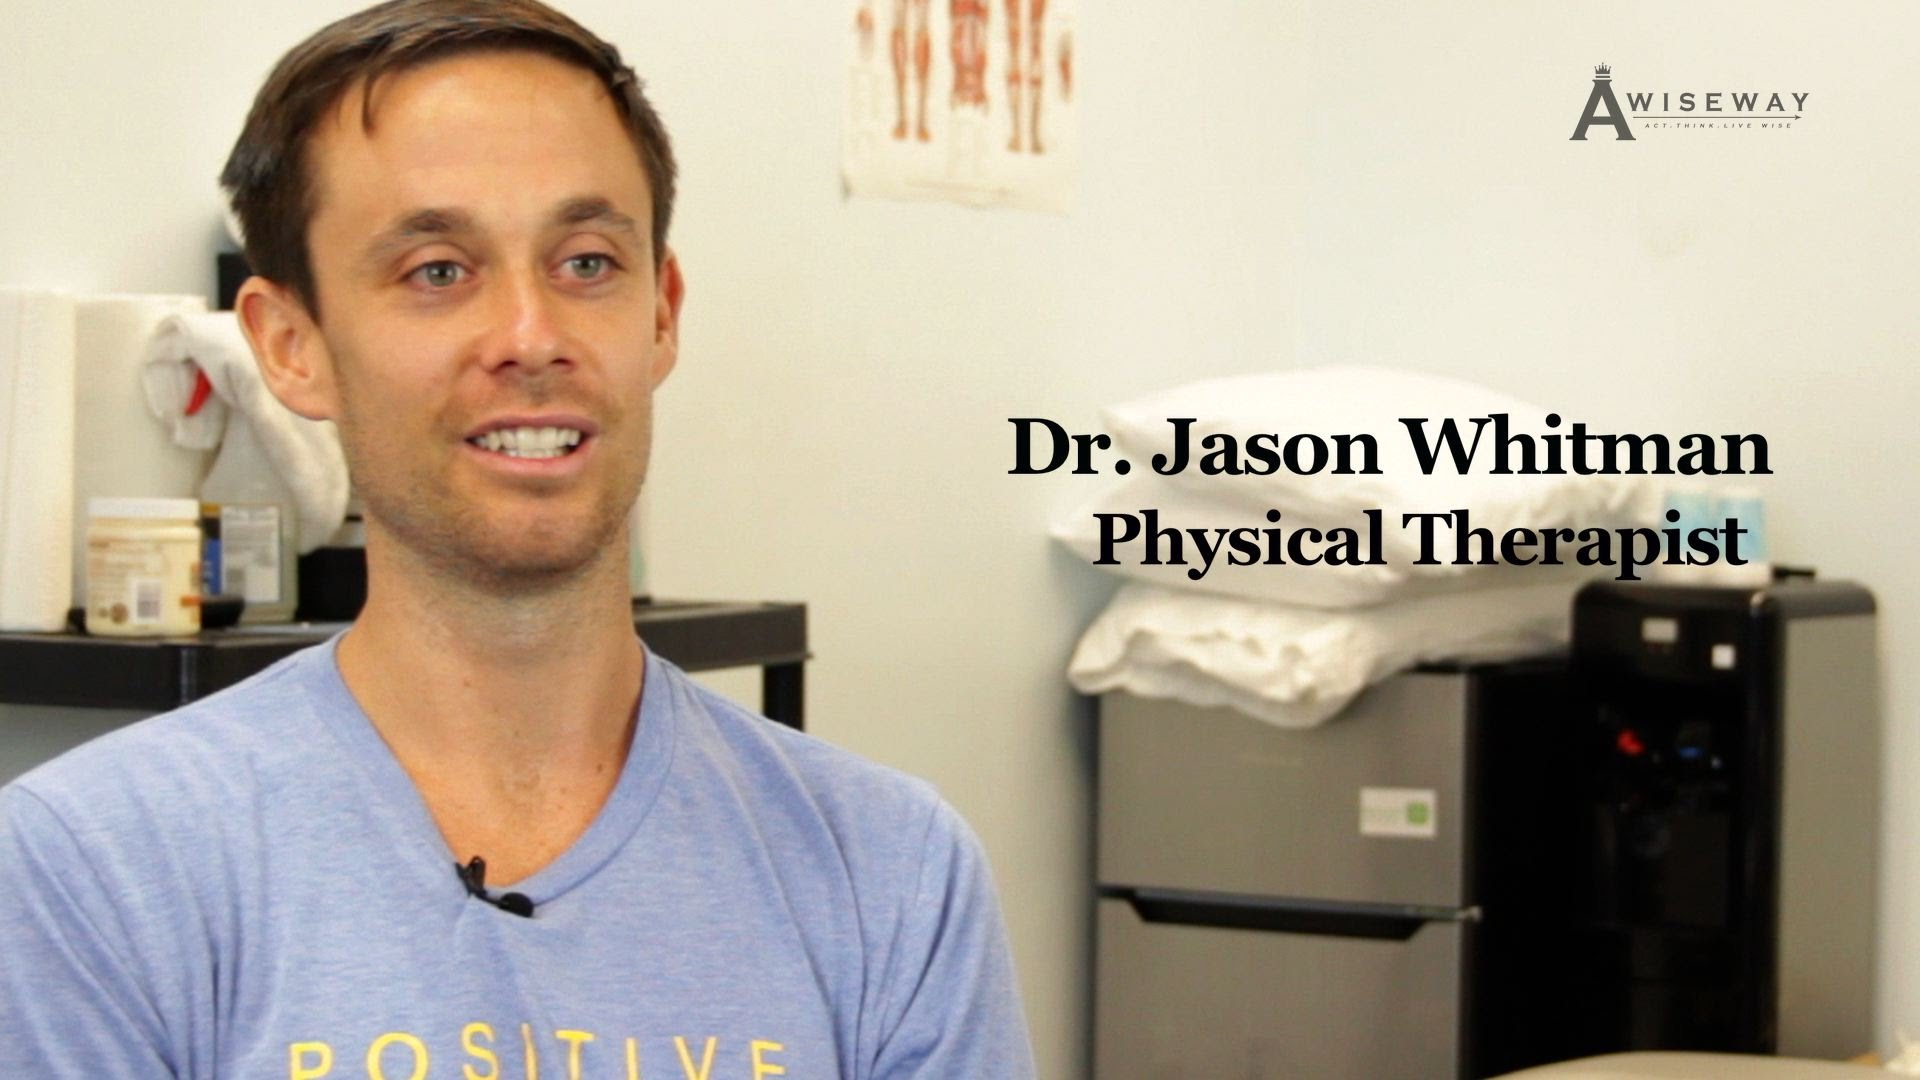 Physical Therapist Shares His Role in an Assault Victims Recovery